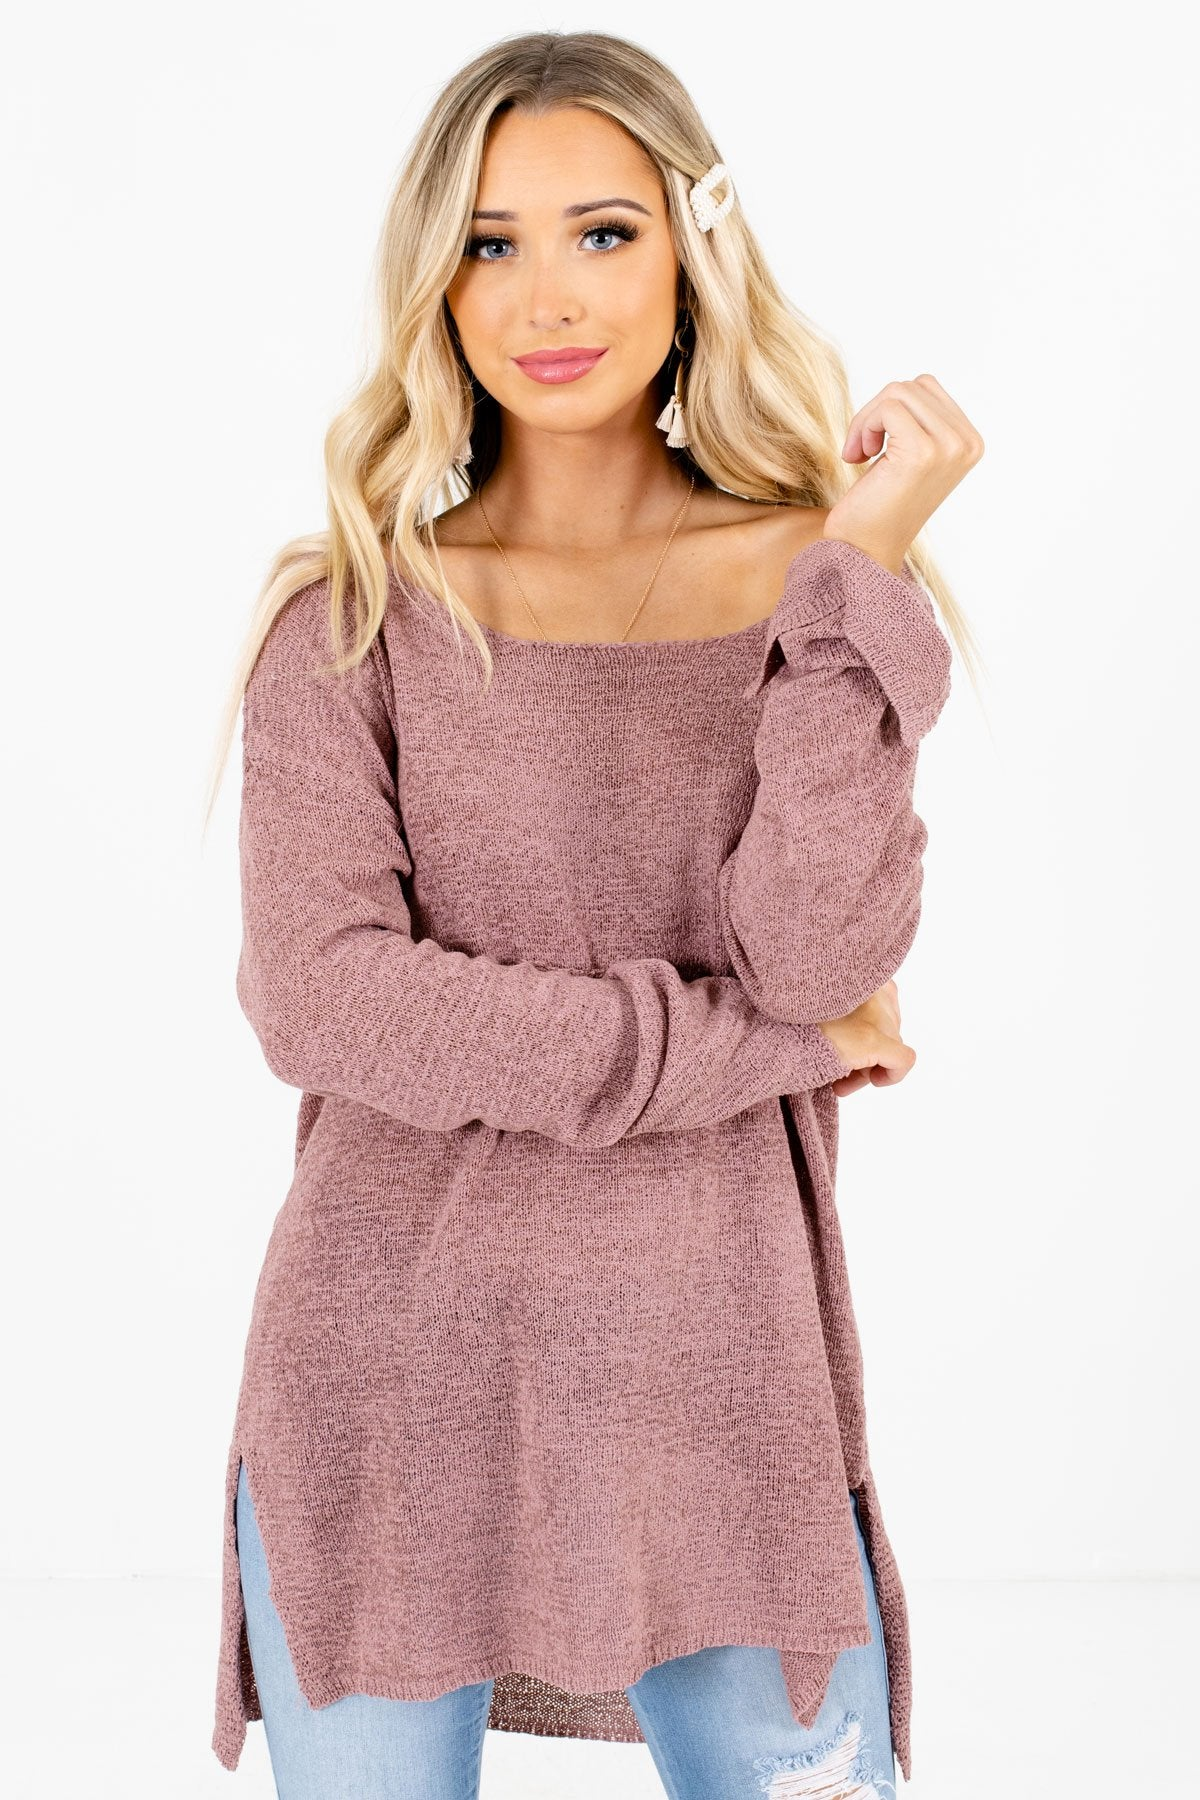 Mauve High-Quality Knit Material Boutique Sweaters for Women